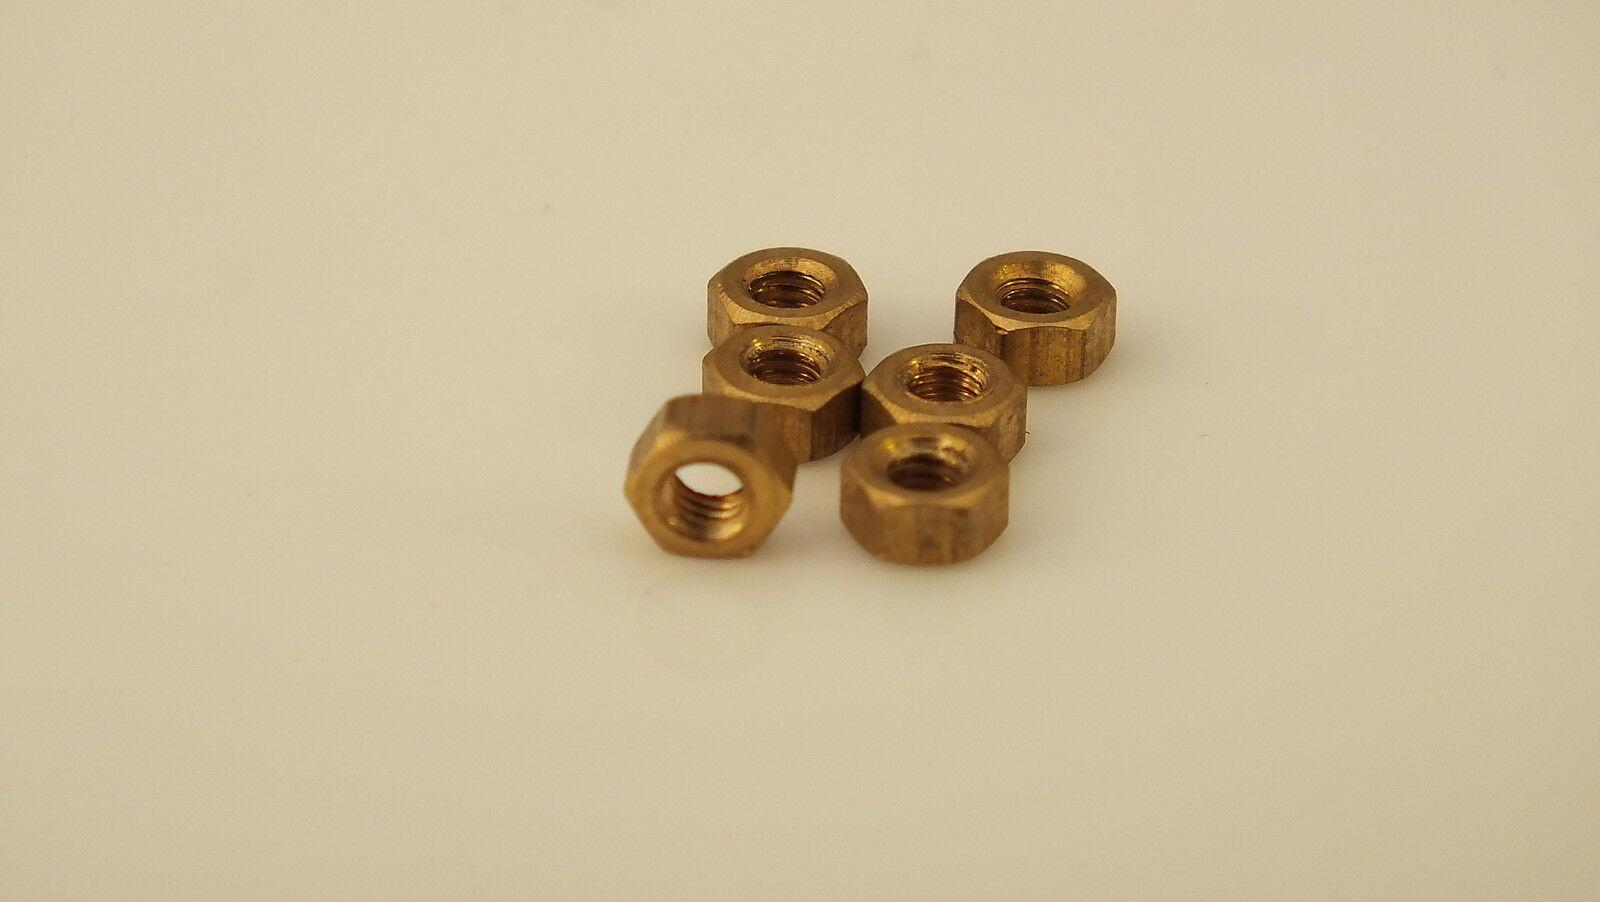 S5097 # HORNBY TRIANG 6 X  P X03/04 MOTOR NUTS  G12D